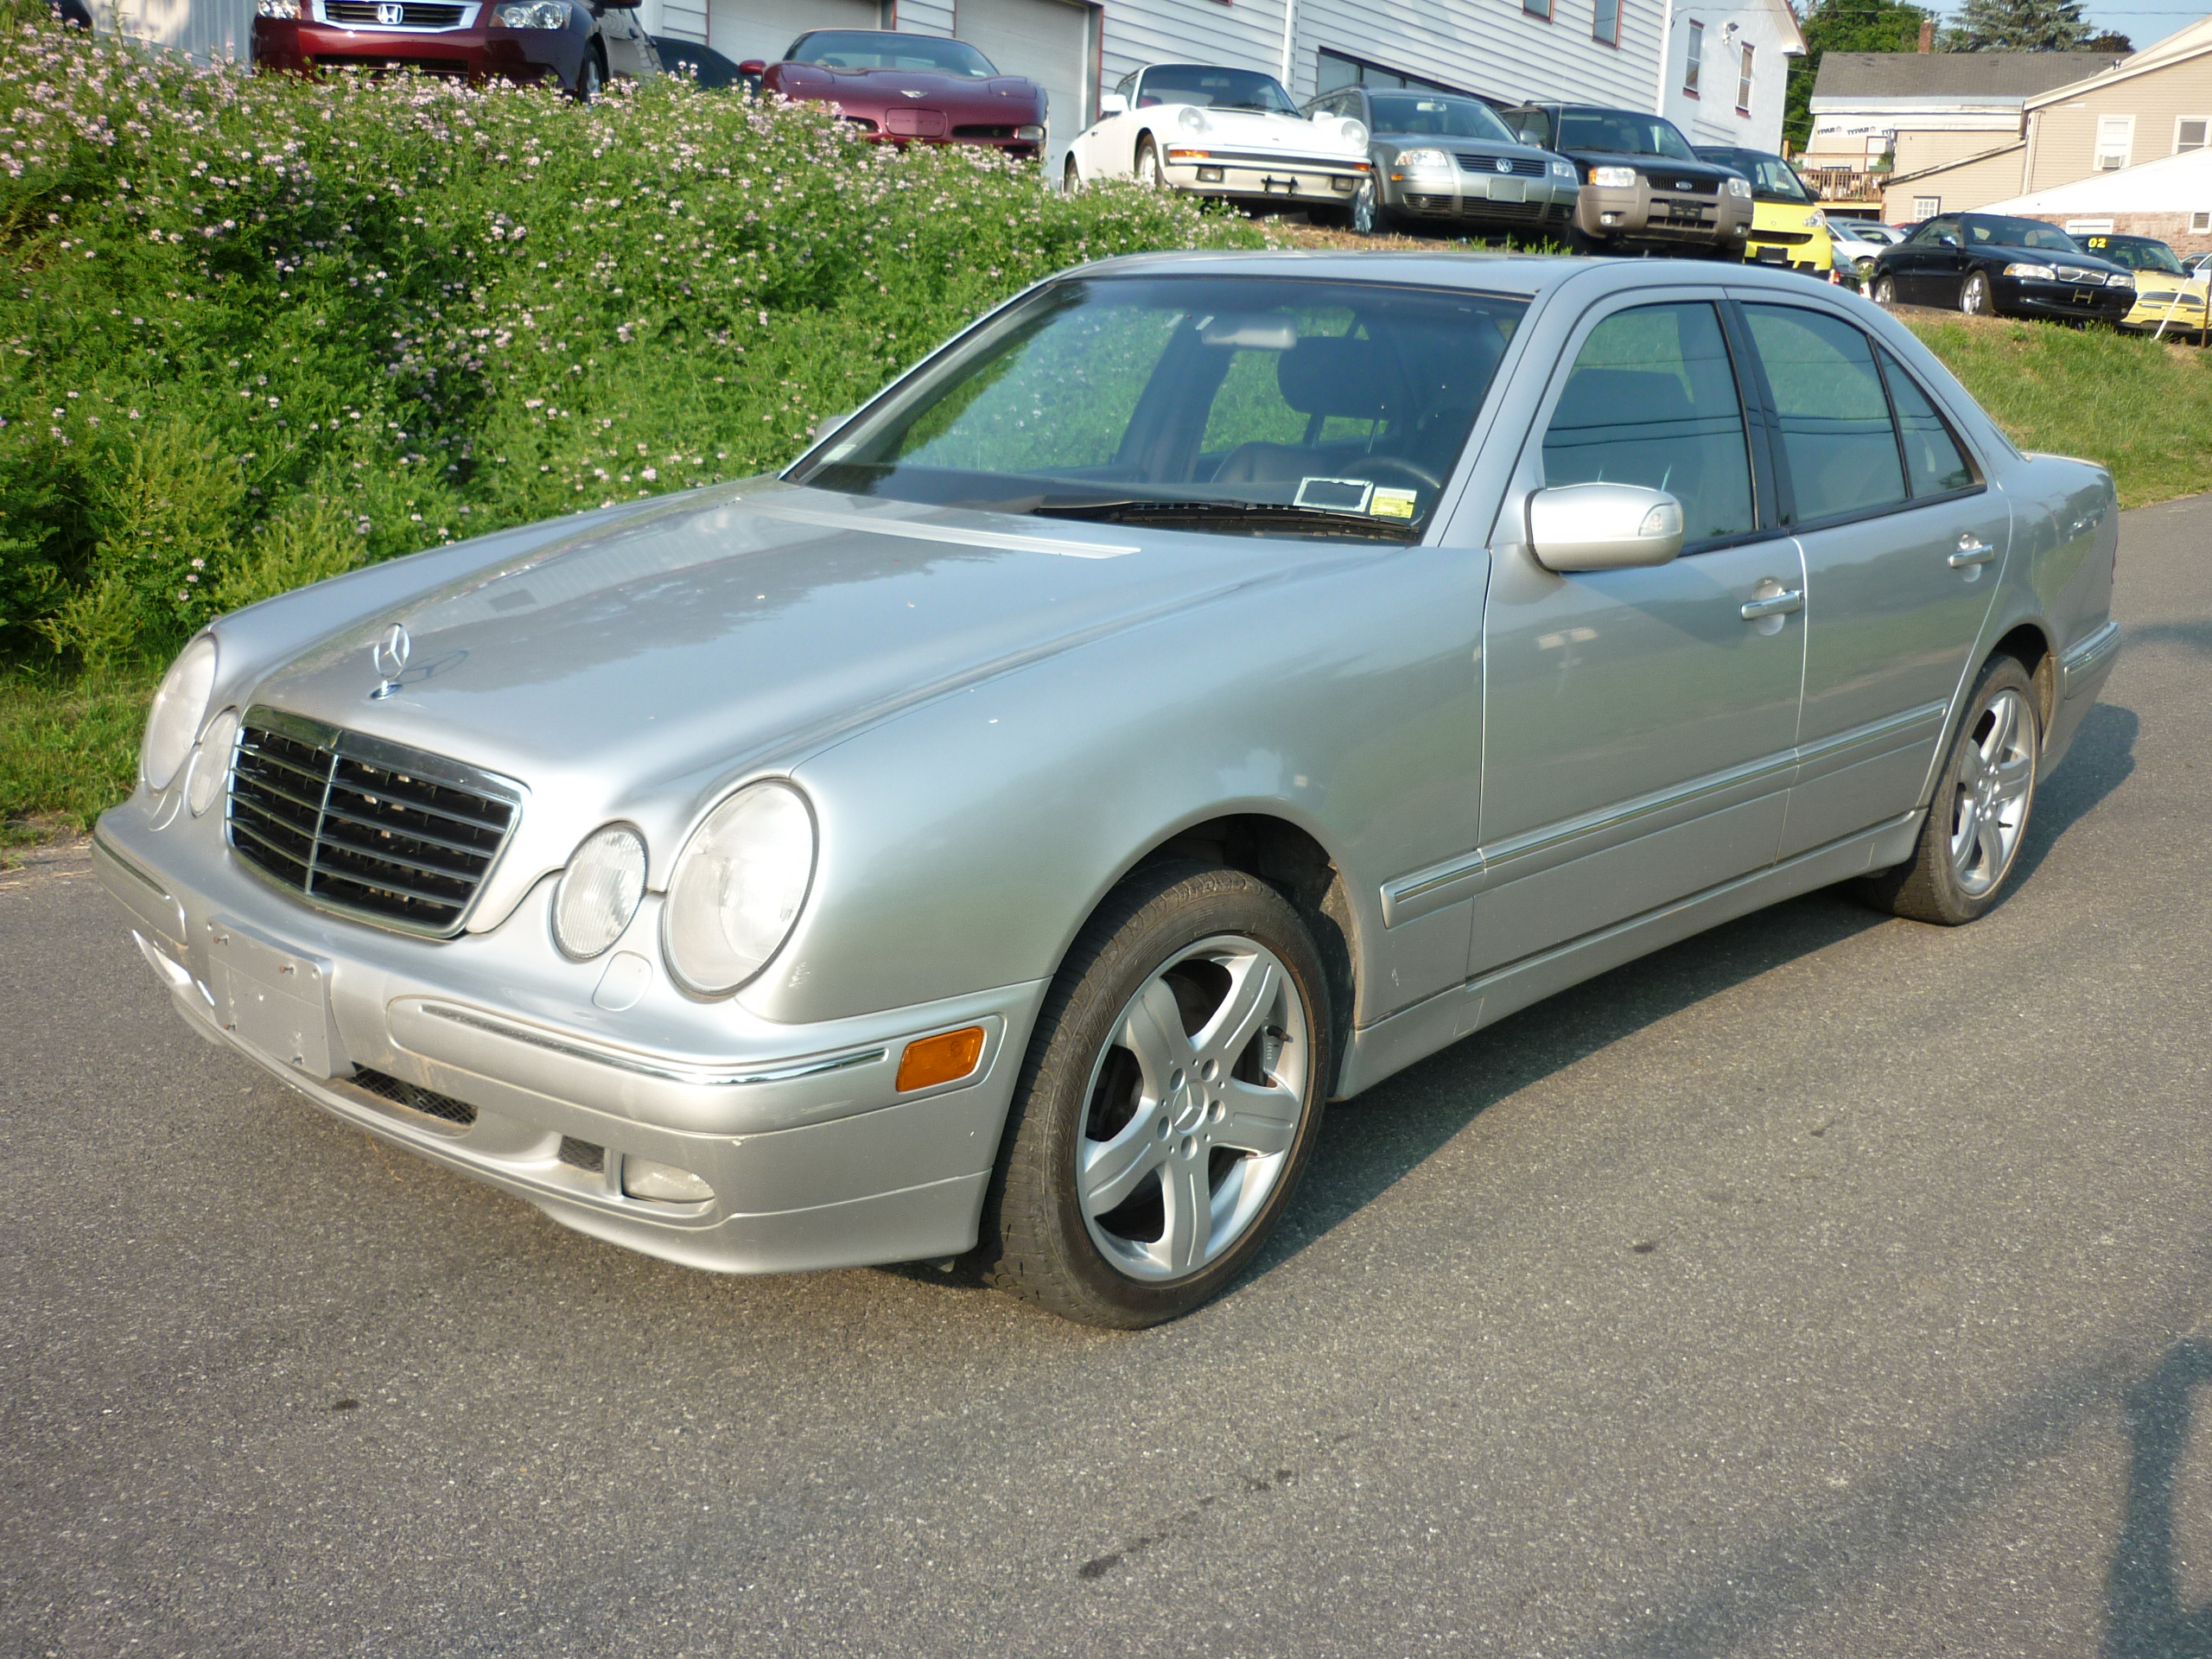 Redline engineering cars for sale 2002 mercedes benz e430 4matic silver